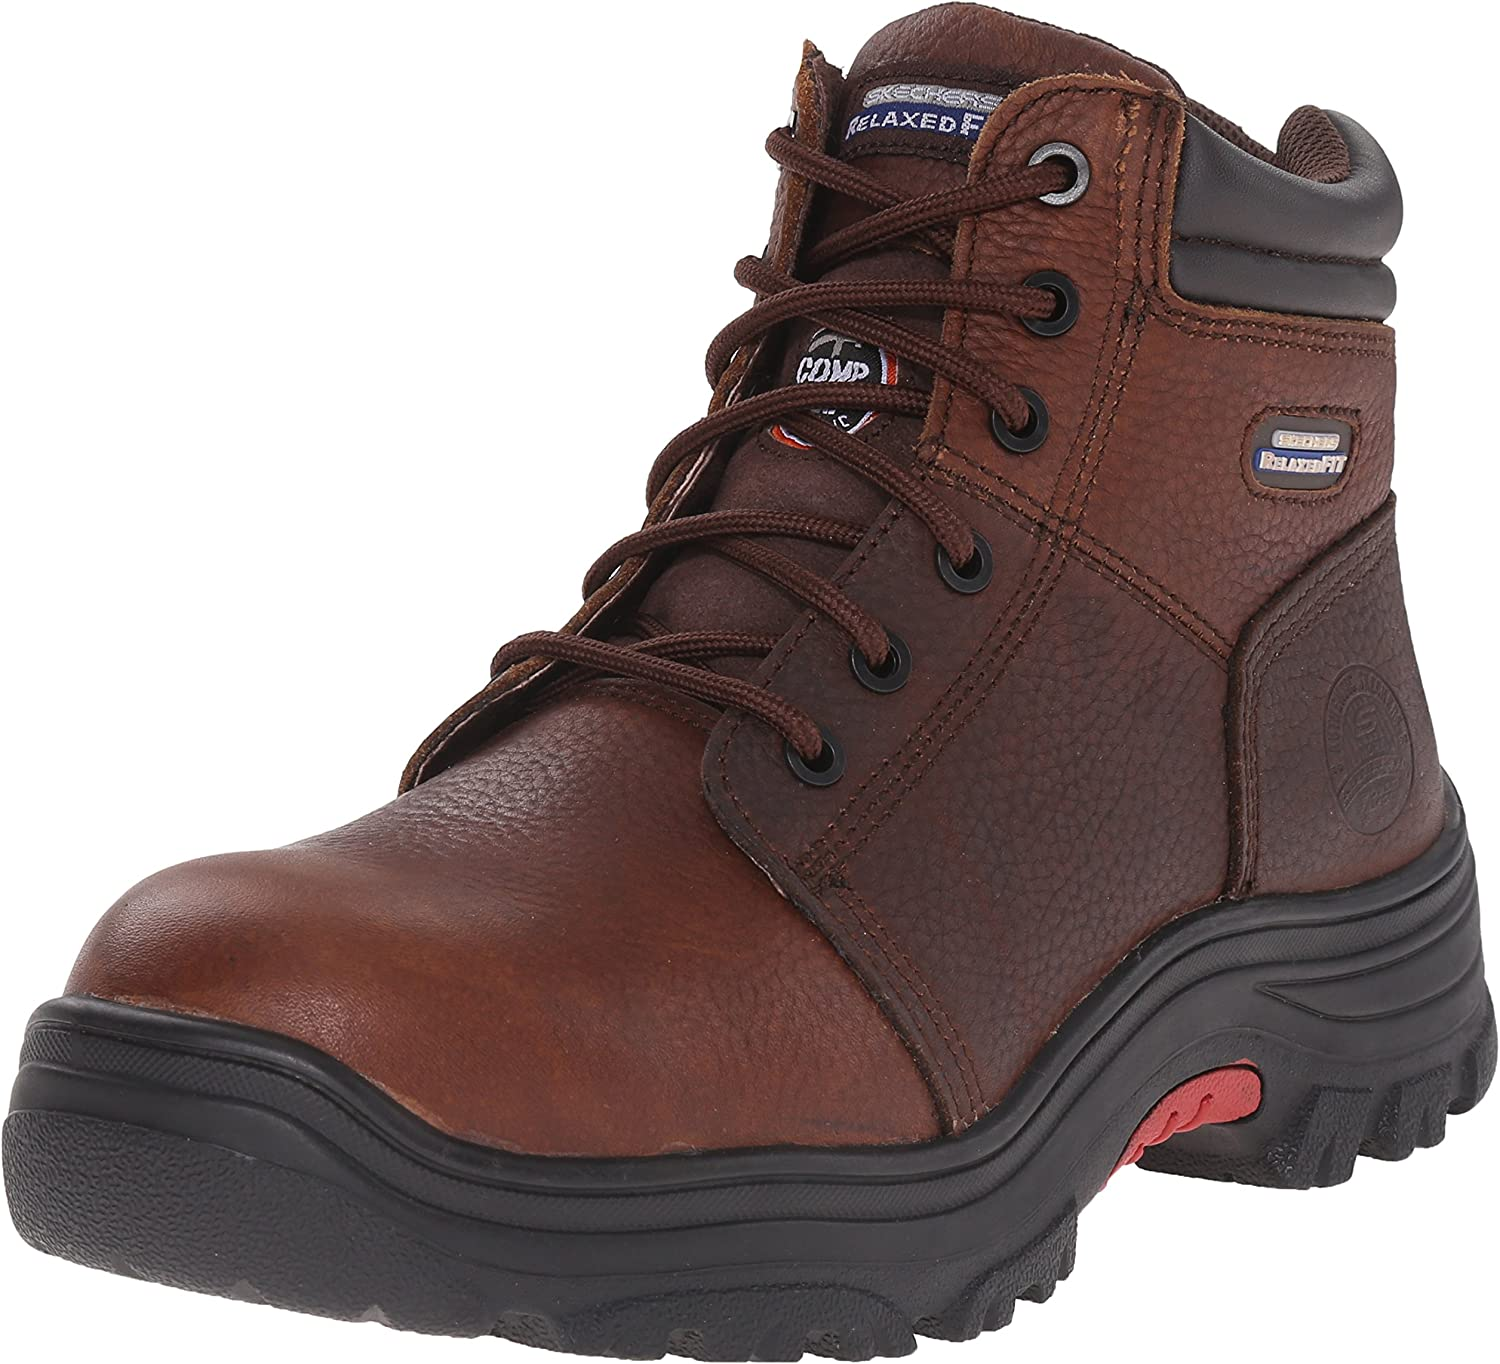 Skechers for Work Men's Burgin Comp Toe Work Boot